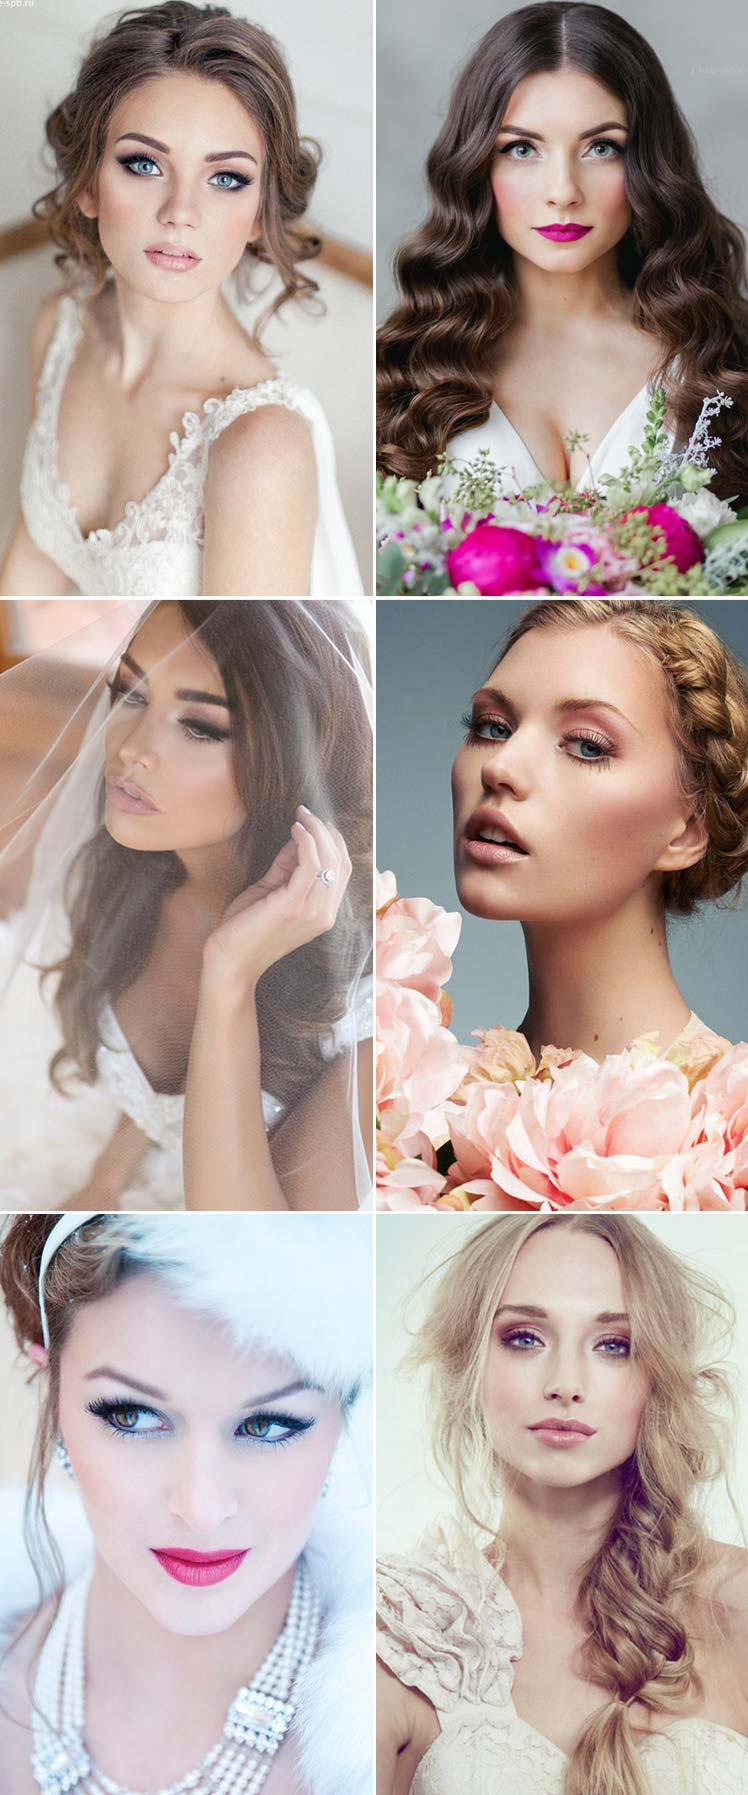 Classic bridal make-up ideas for every style